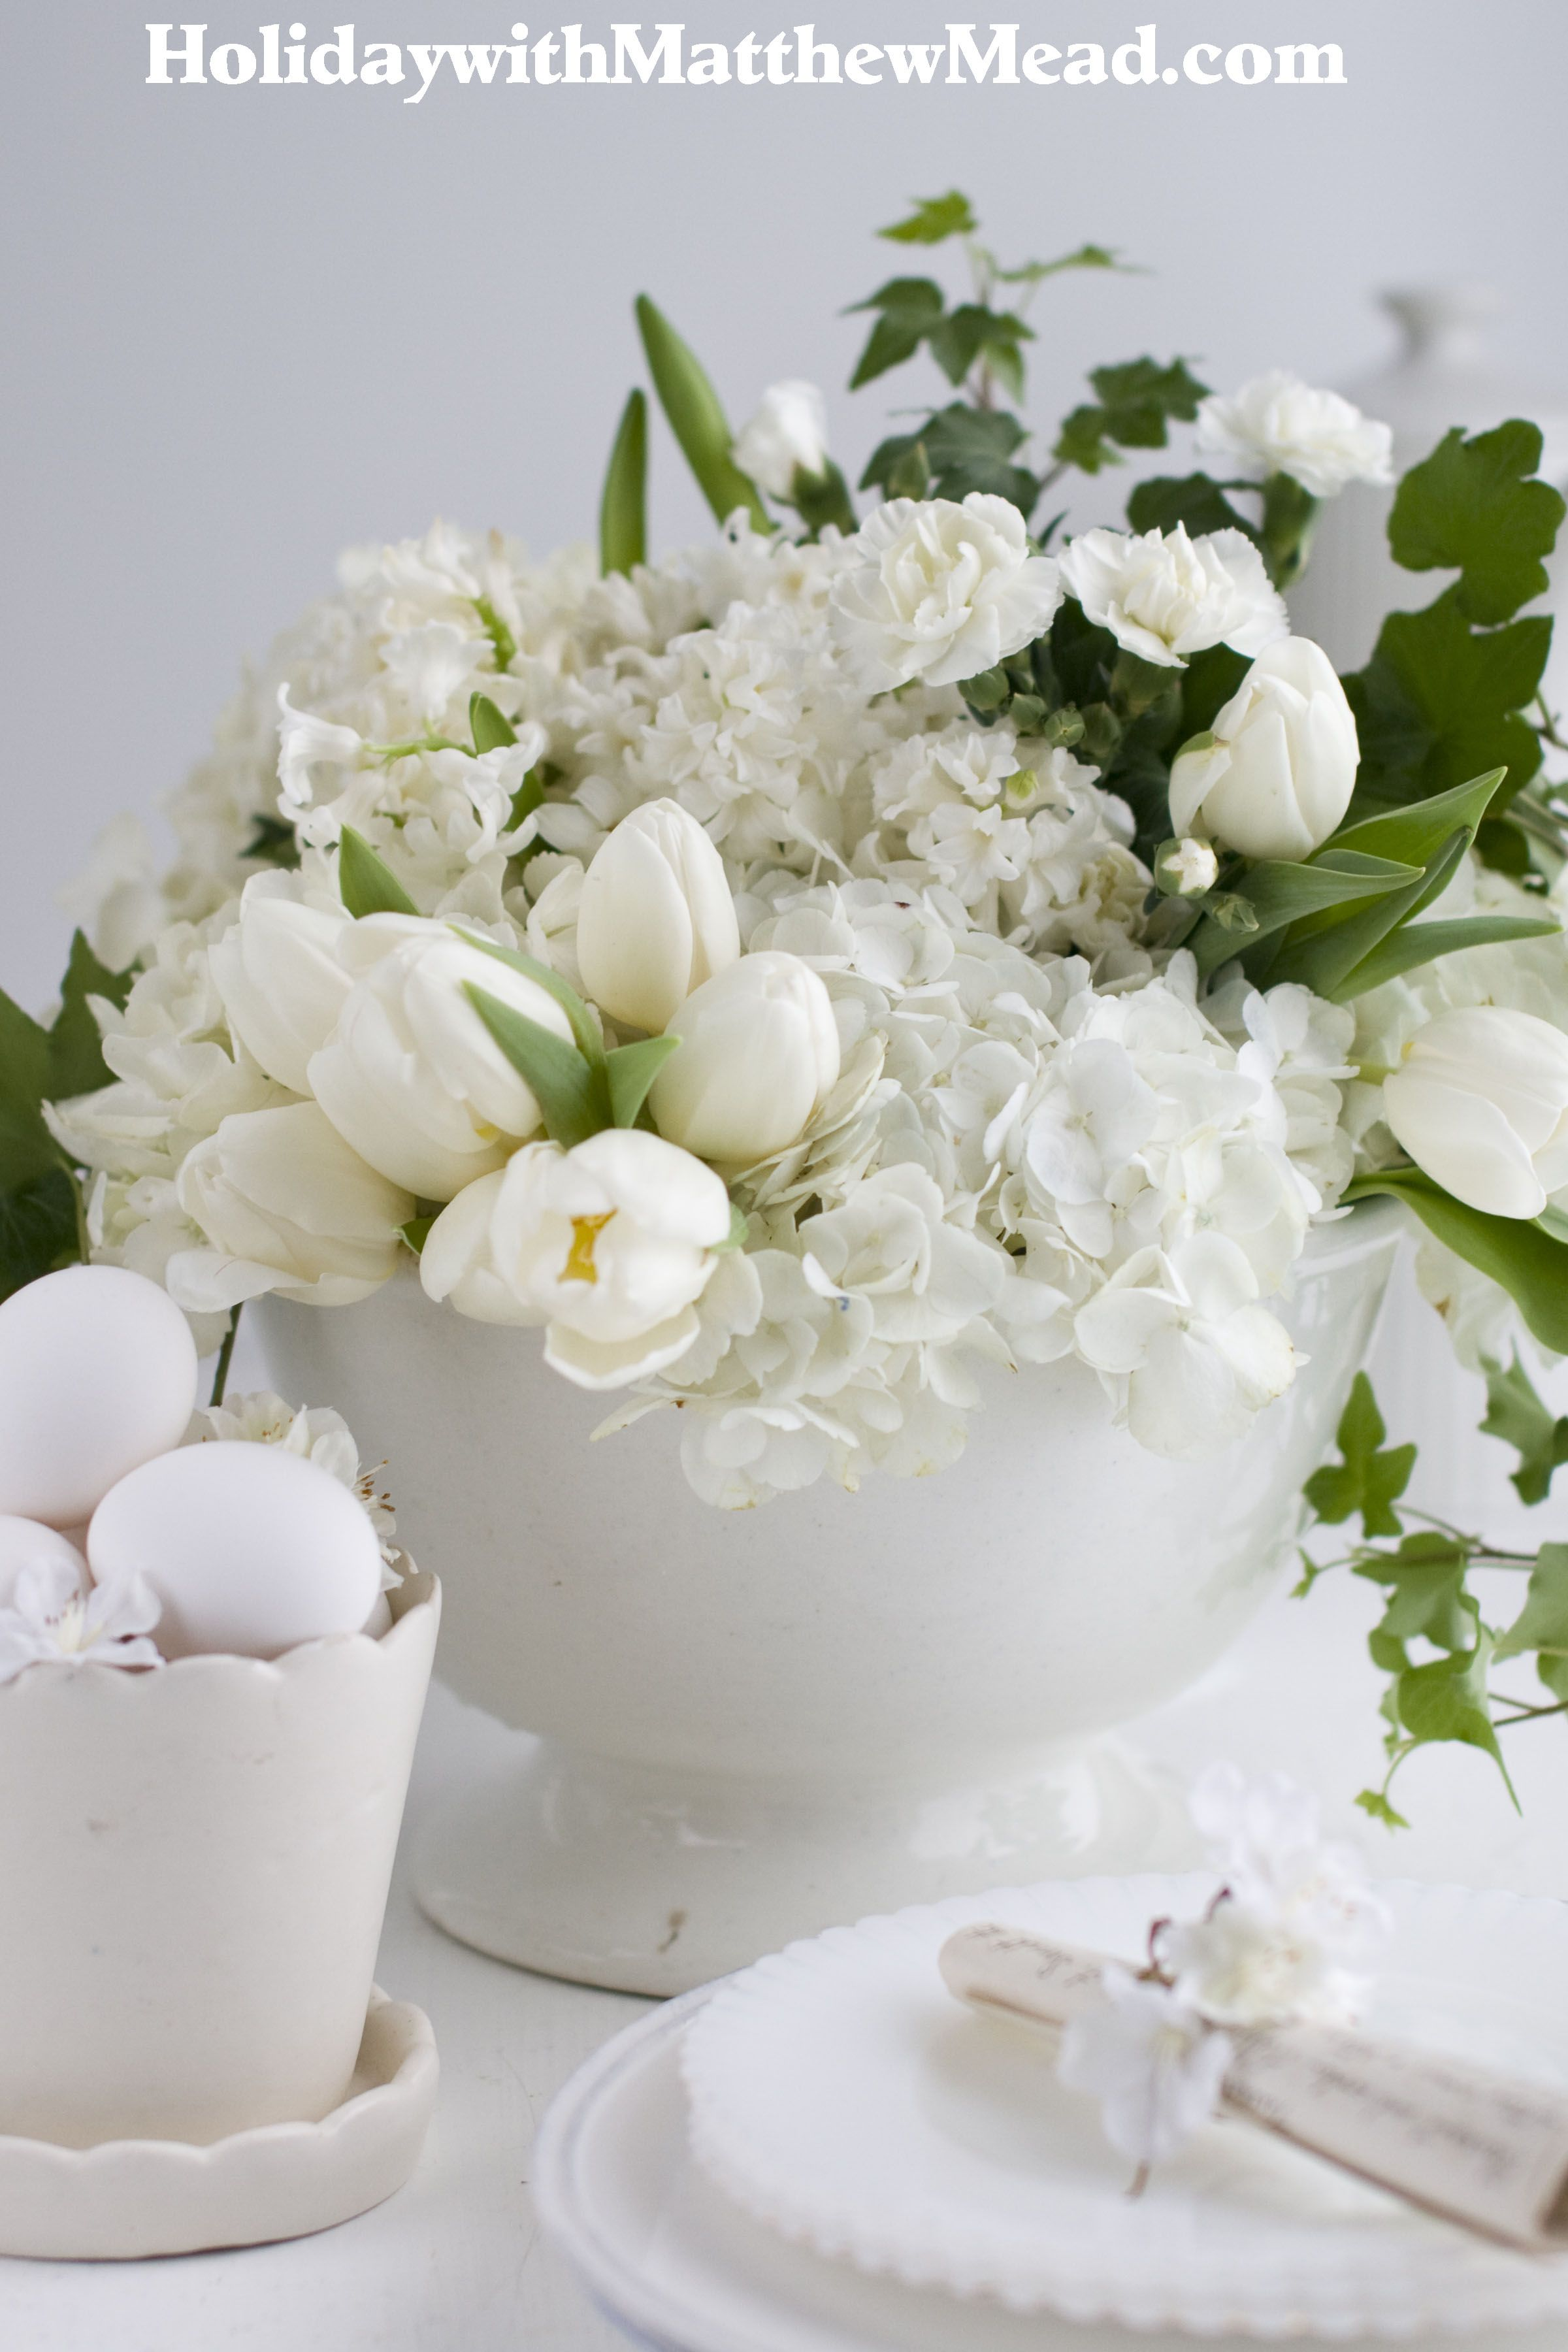 Ironstone footed bowl with an profusion of white blooms. www.HolidaywithMatthewMead.com